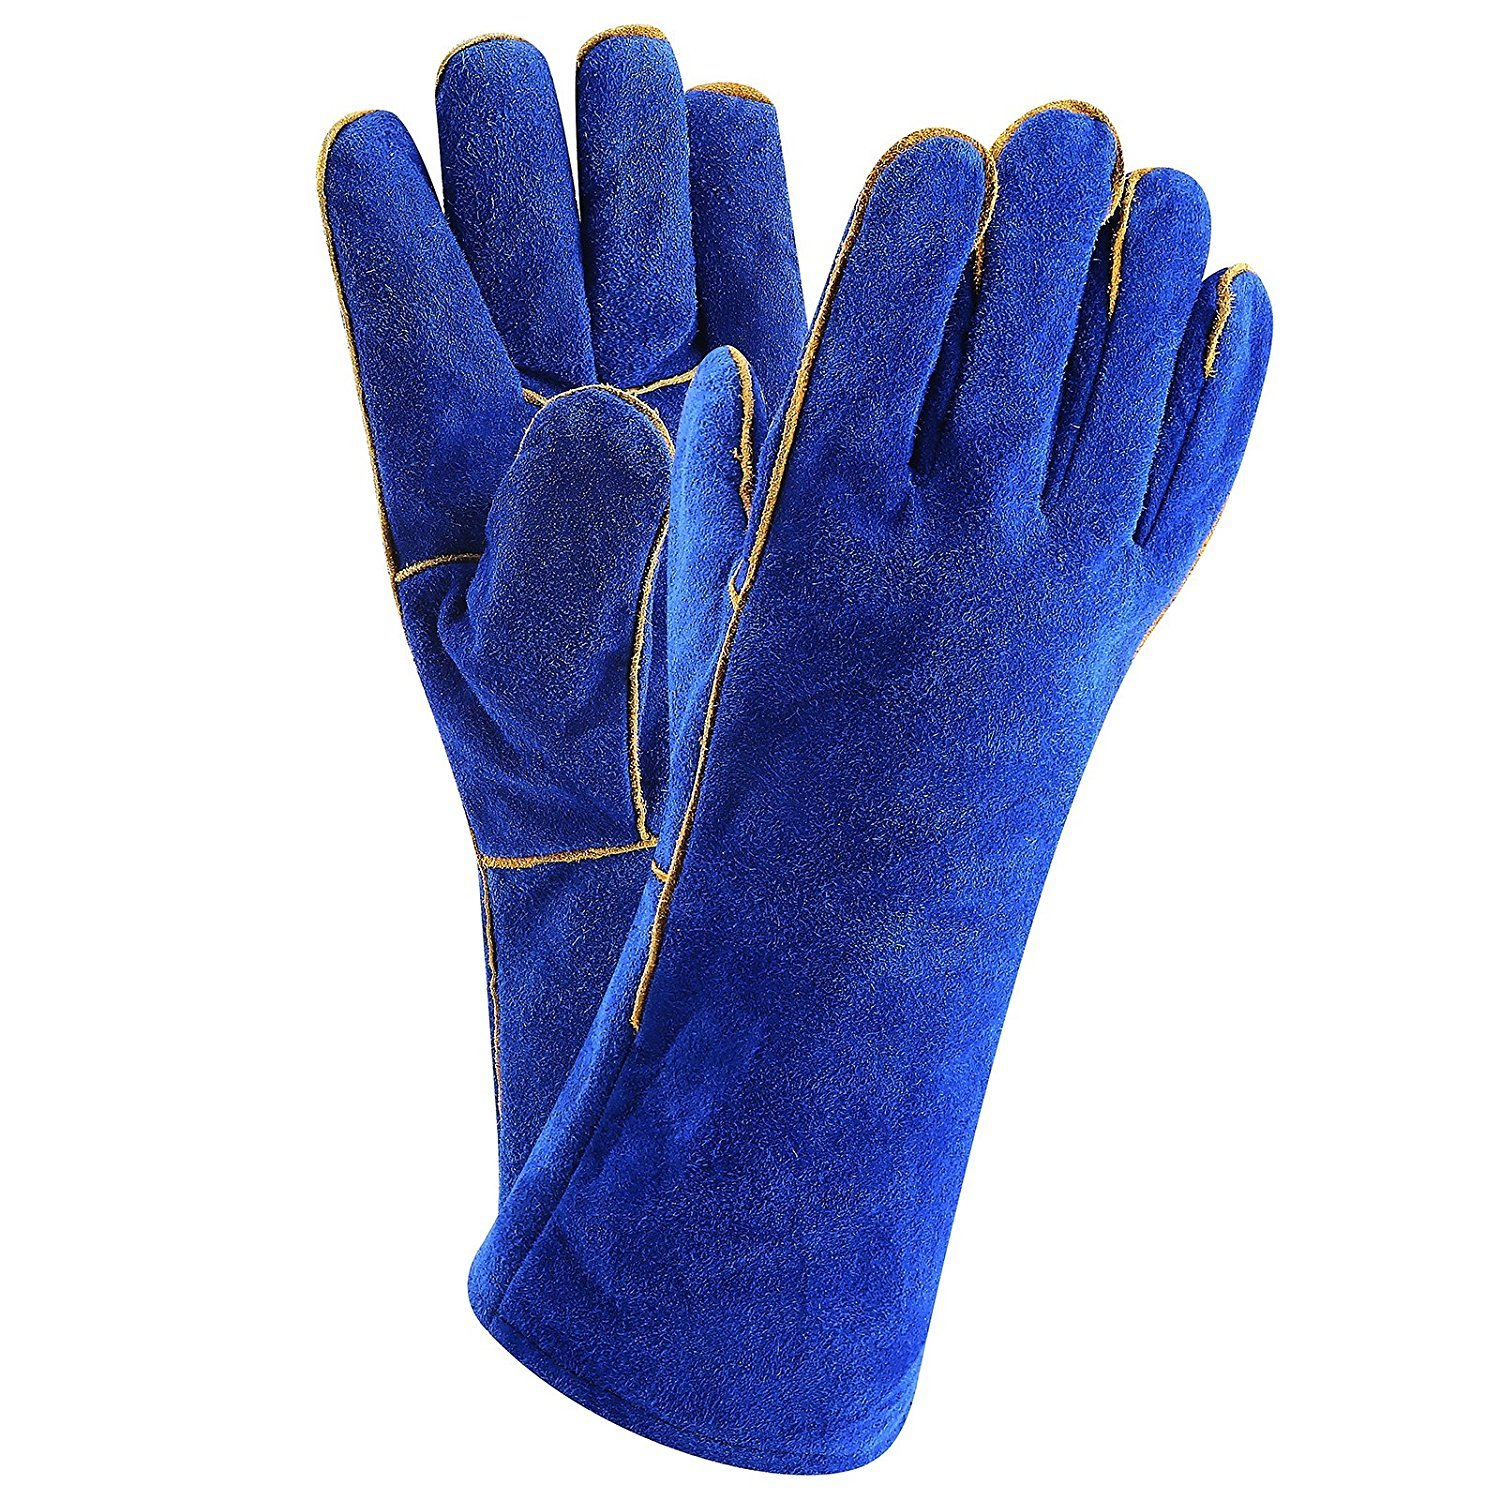 DEKOPRO Welding Gloves Heat Resistant Lined Leather, Blue - 14 Inch for Mig, Tig Welders, BBQ, Gardening, Camping, Stove, Fireplace and More